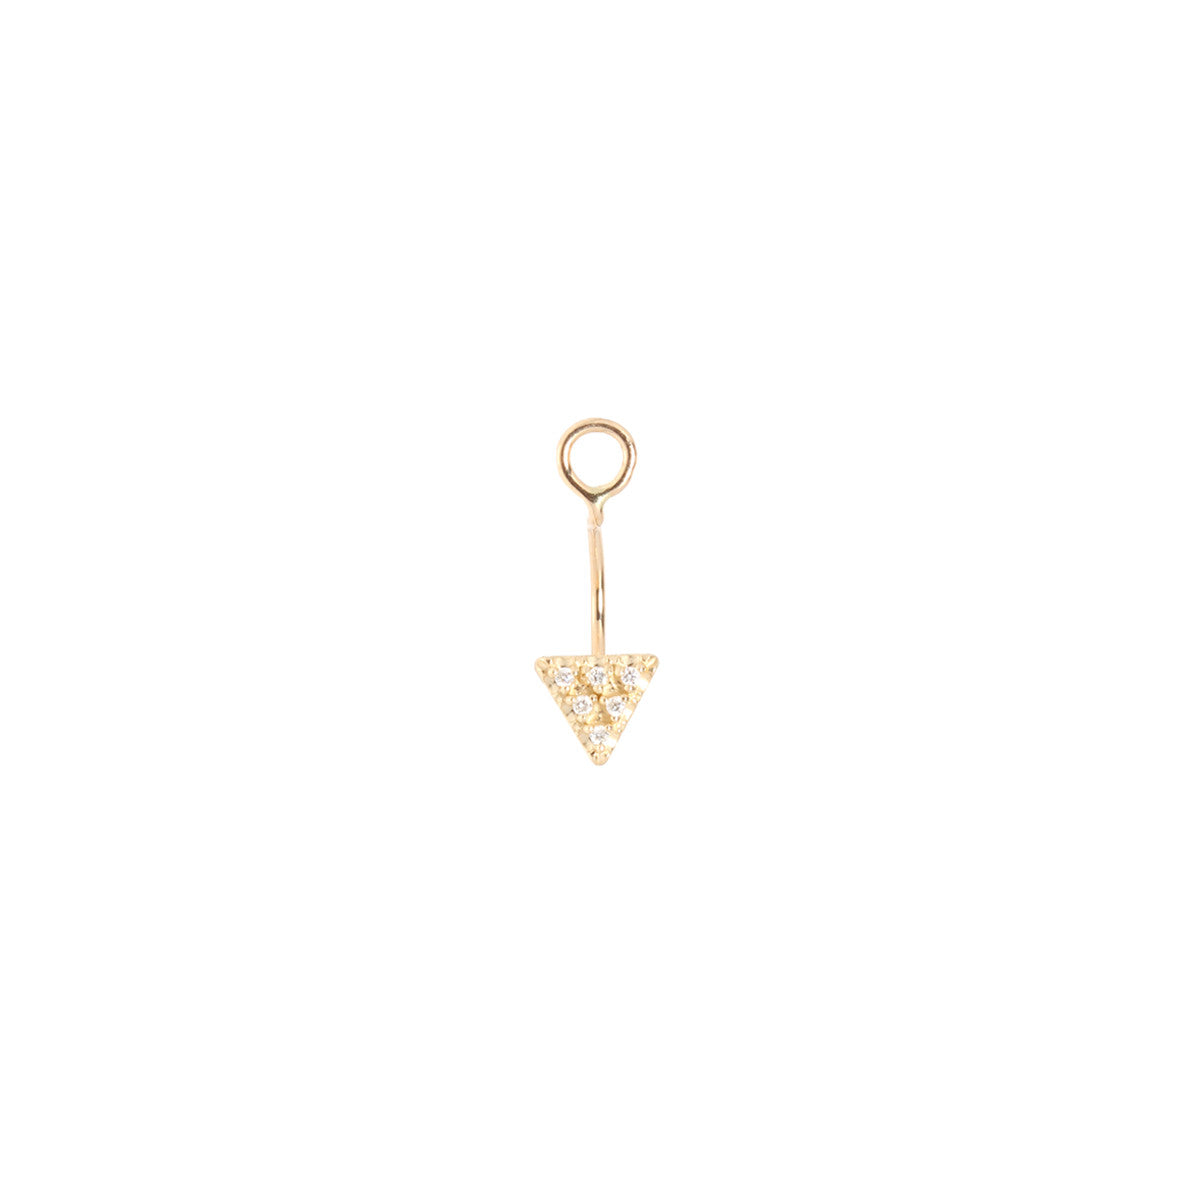 14k pave single triangle stud charm